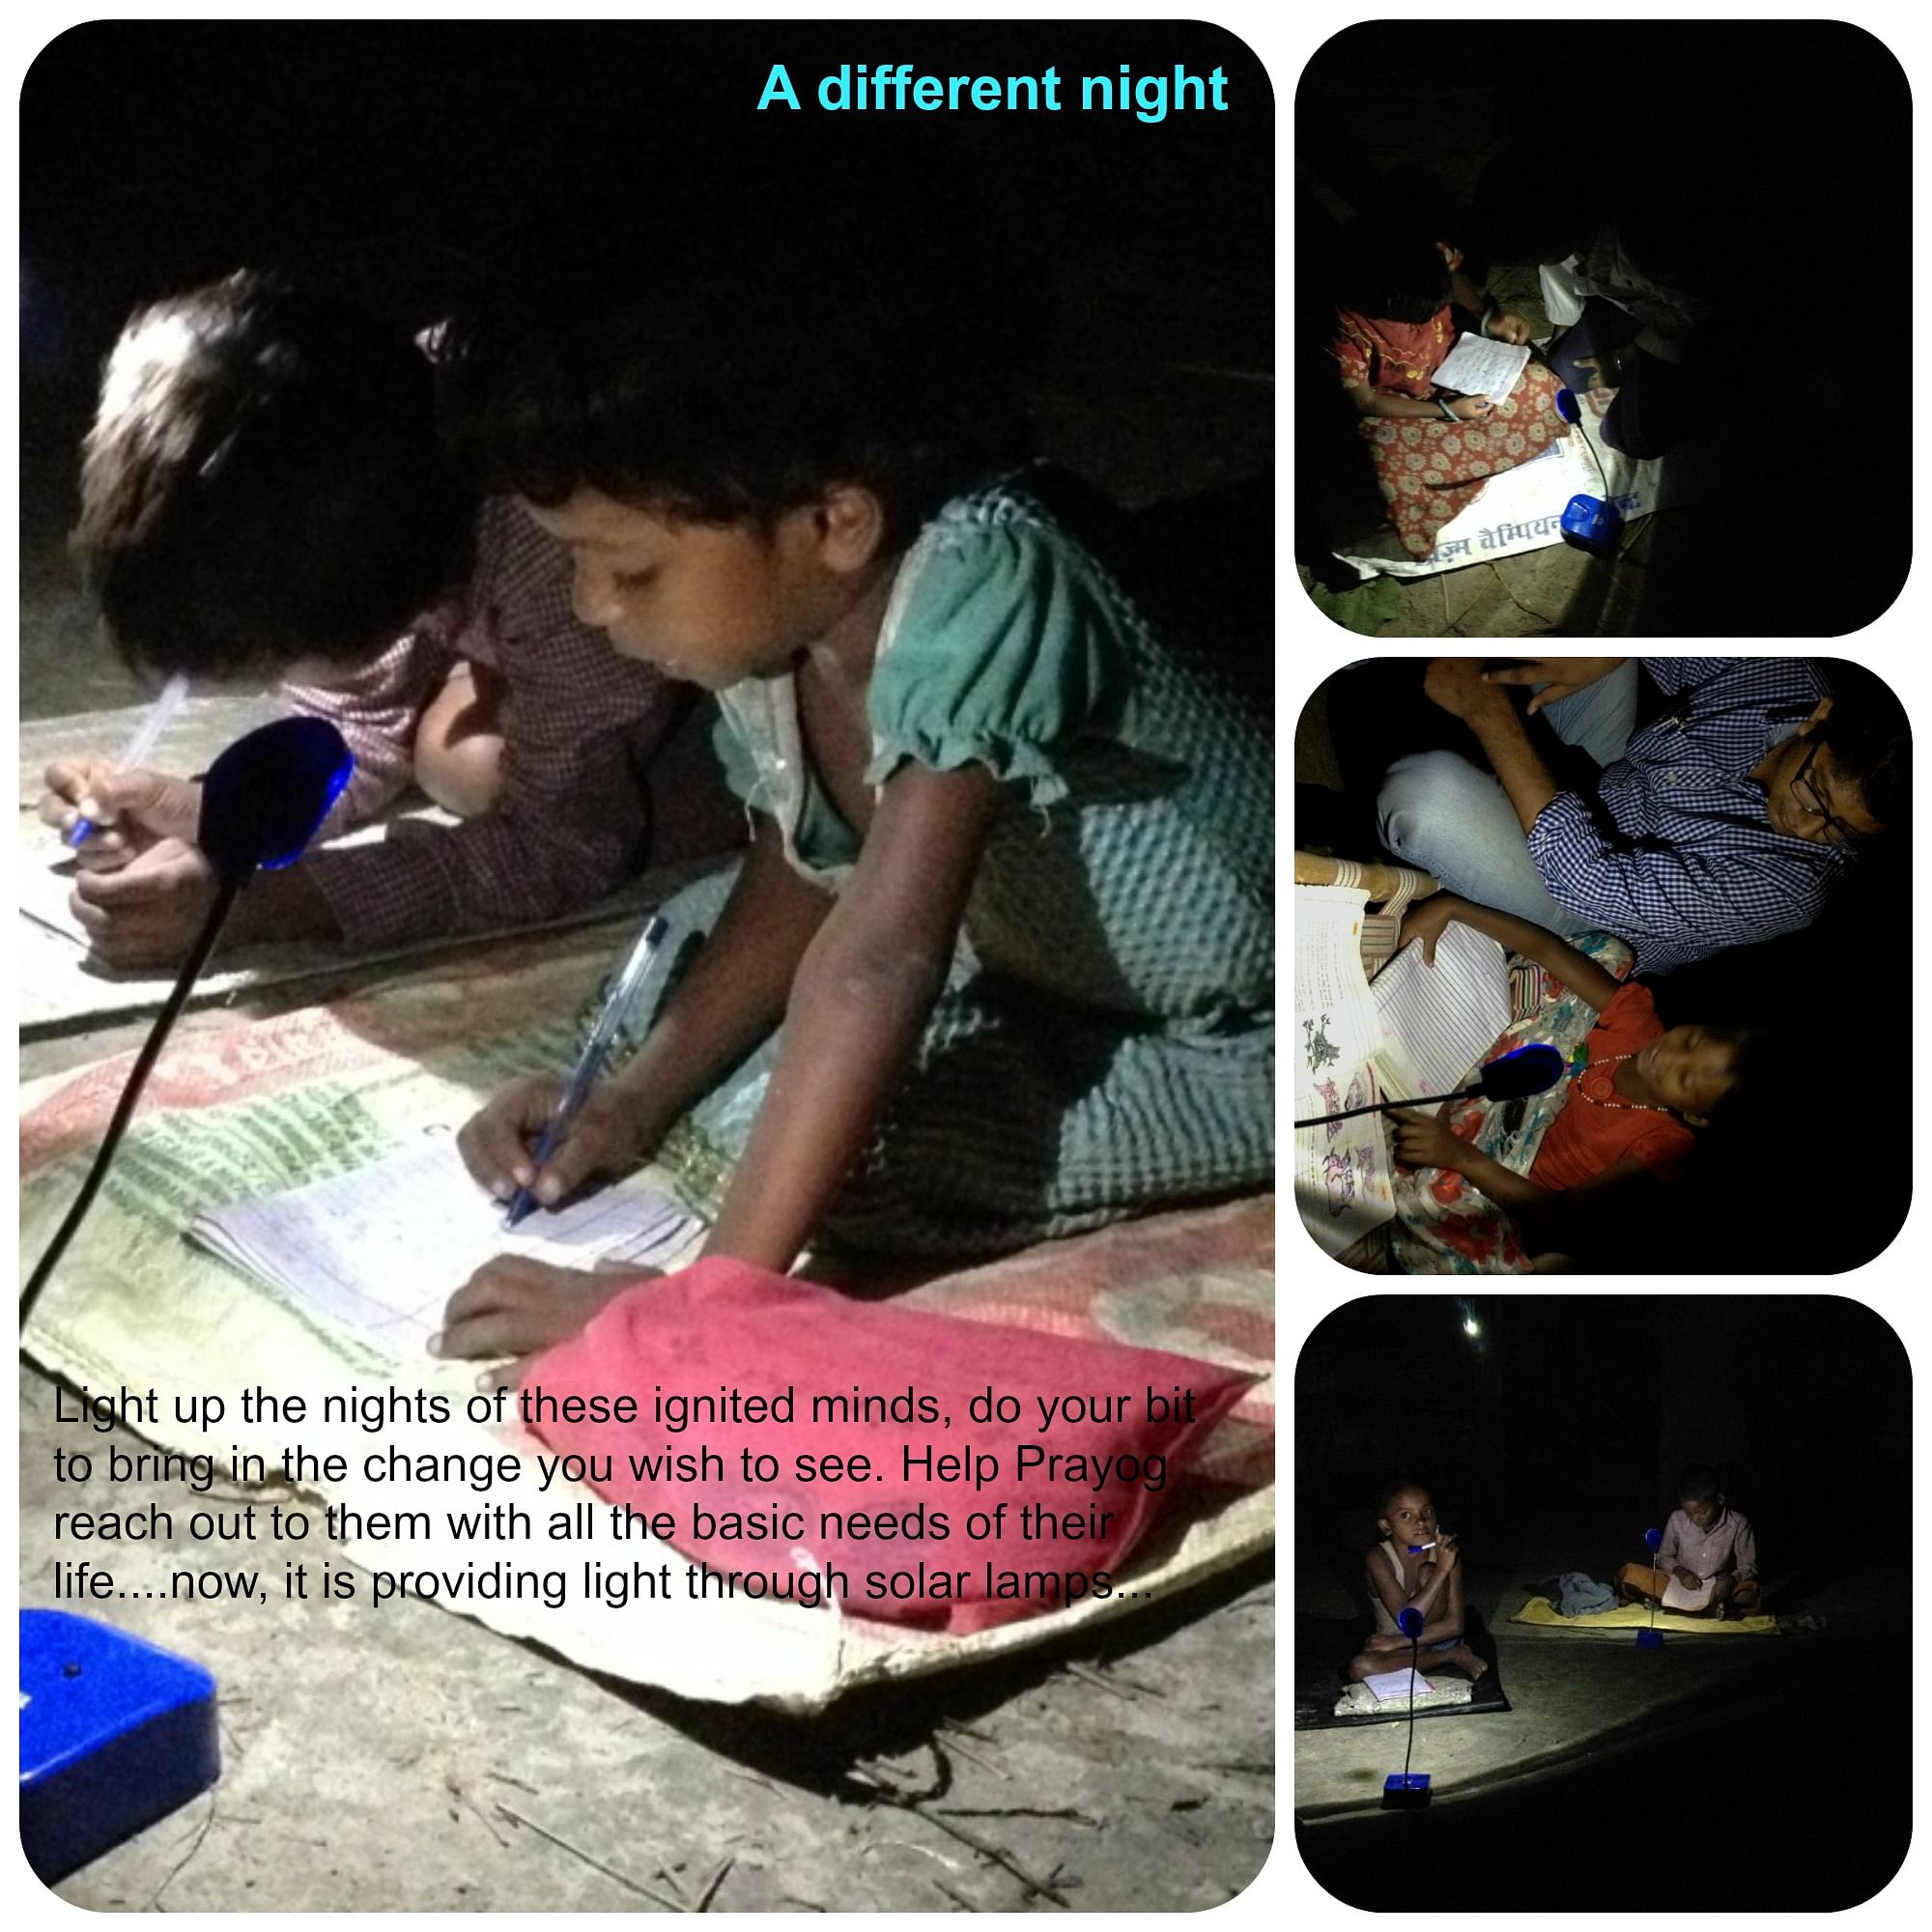 Surya Prakash is looking for funds to provide solar lamps to the village children.